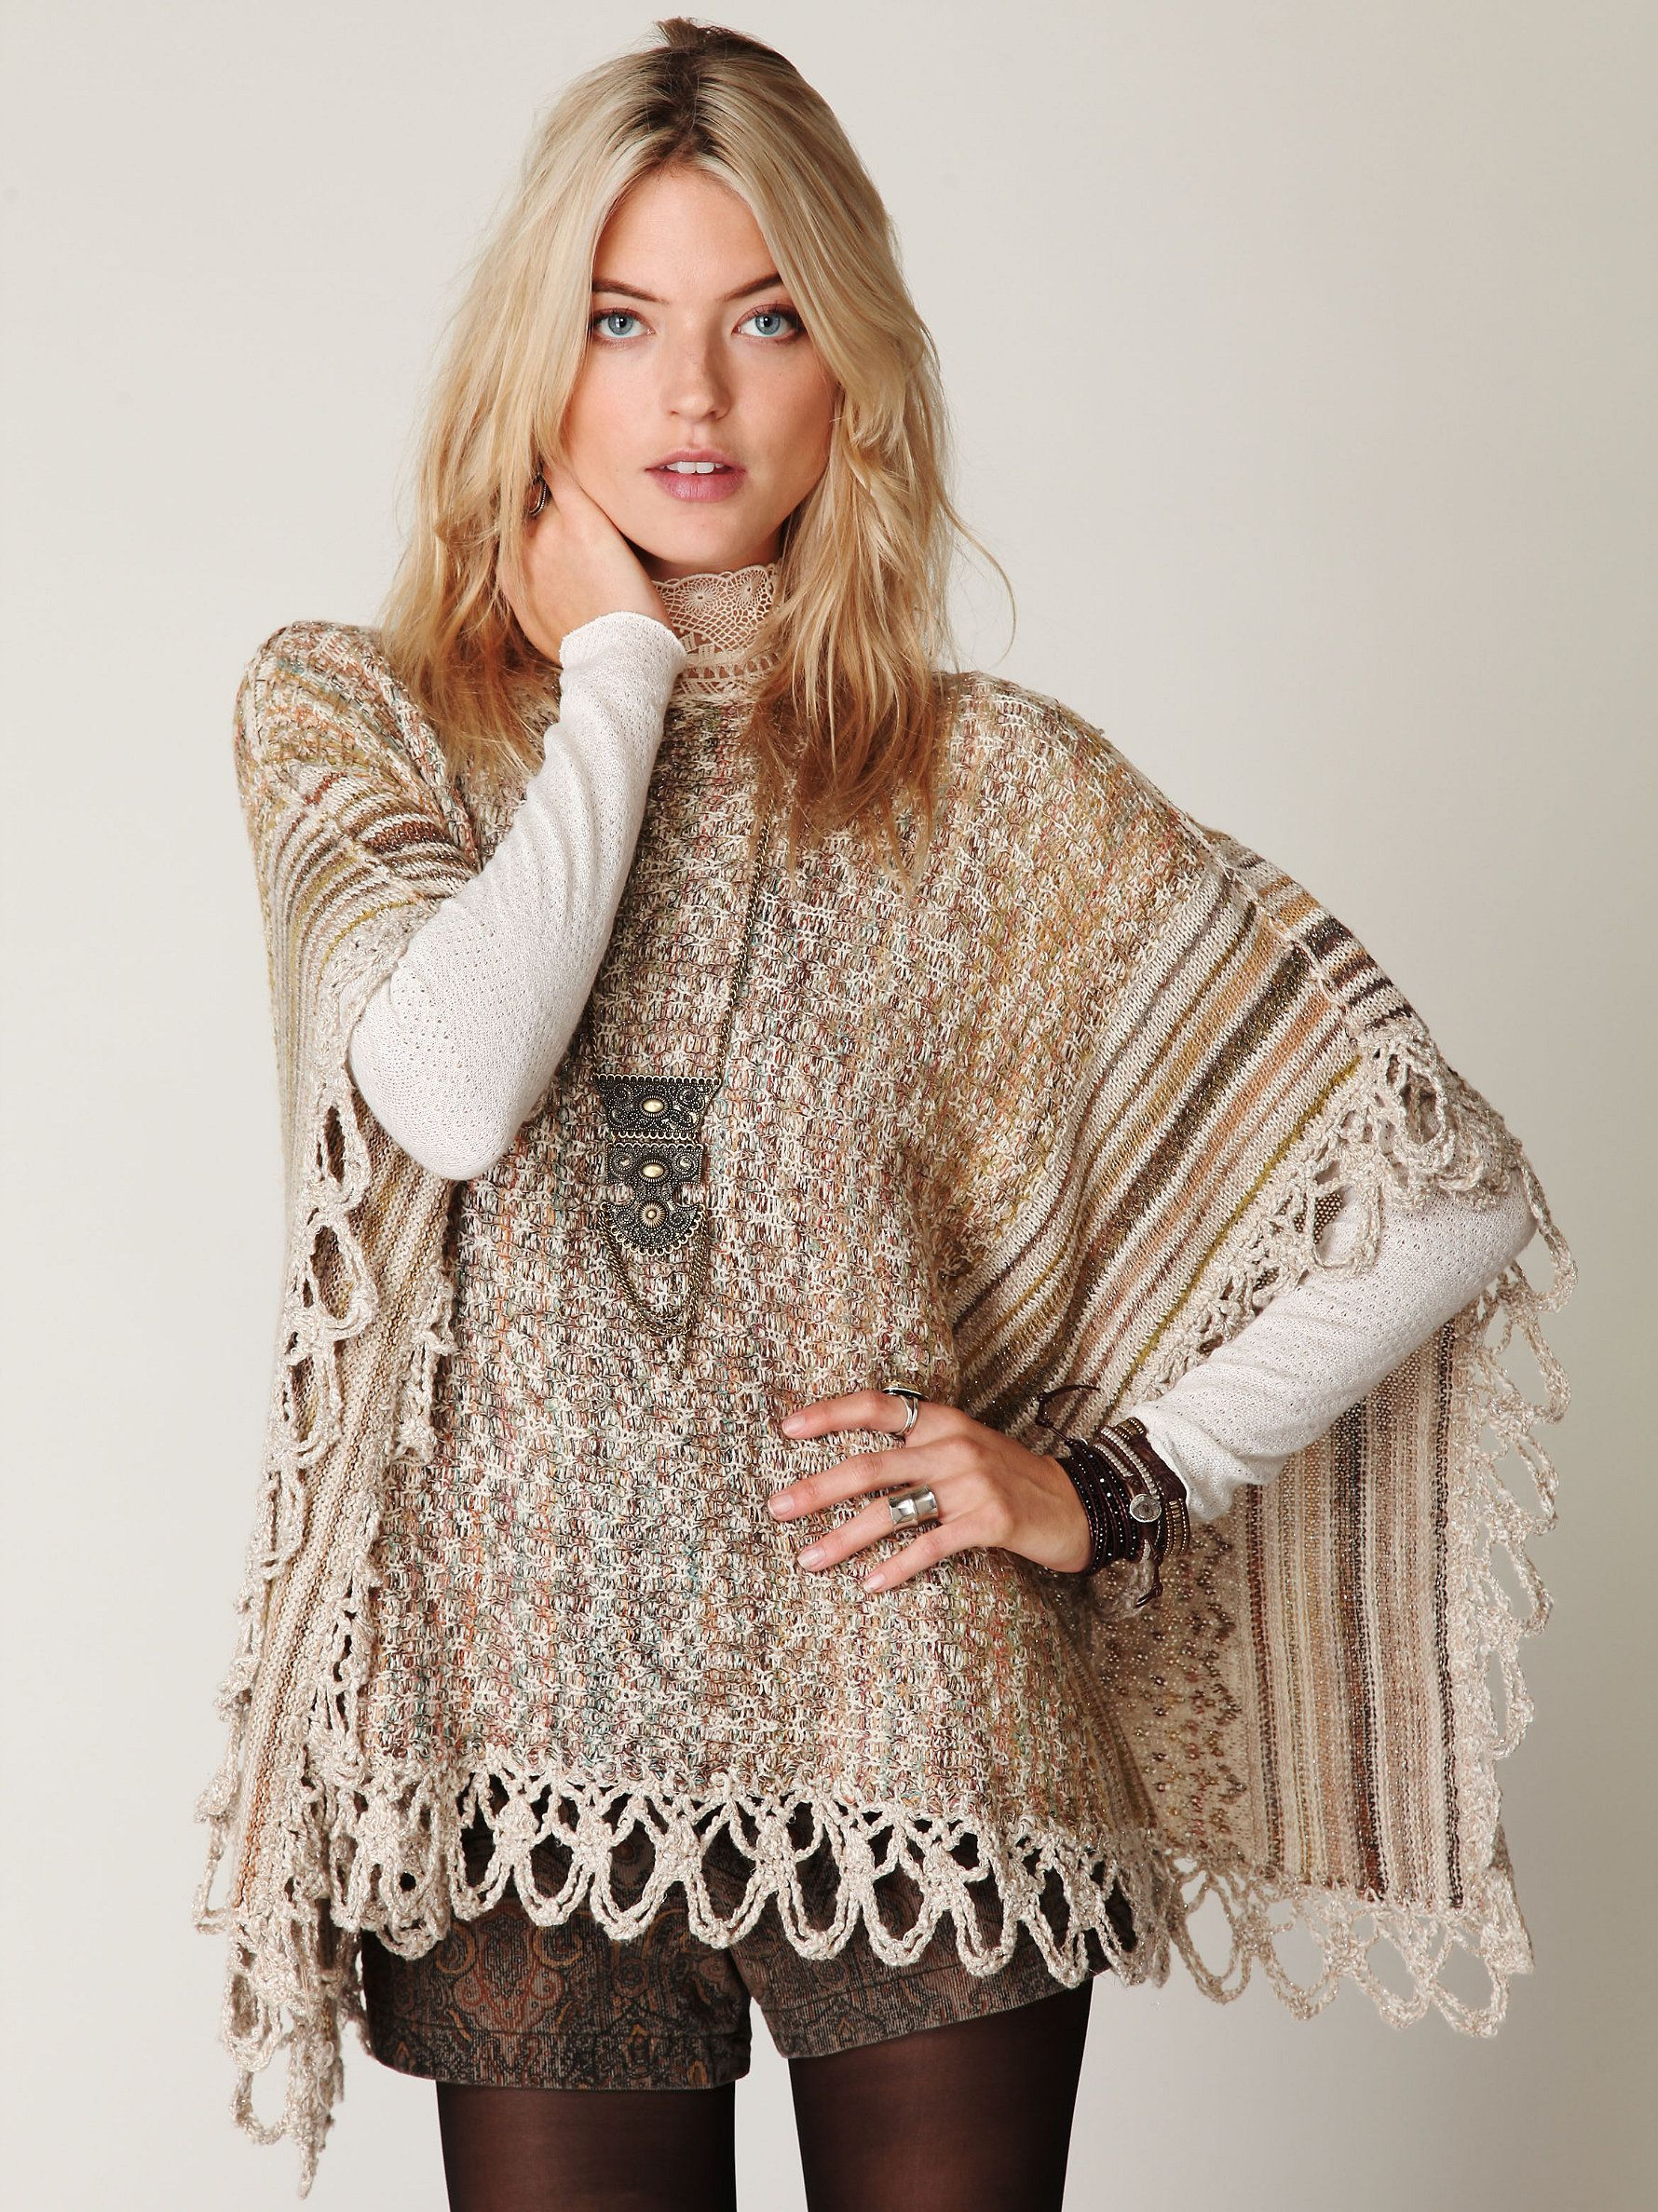 Free People Casablanca Shimmery Knit Poncho Cape Sweater, Style Stains